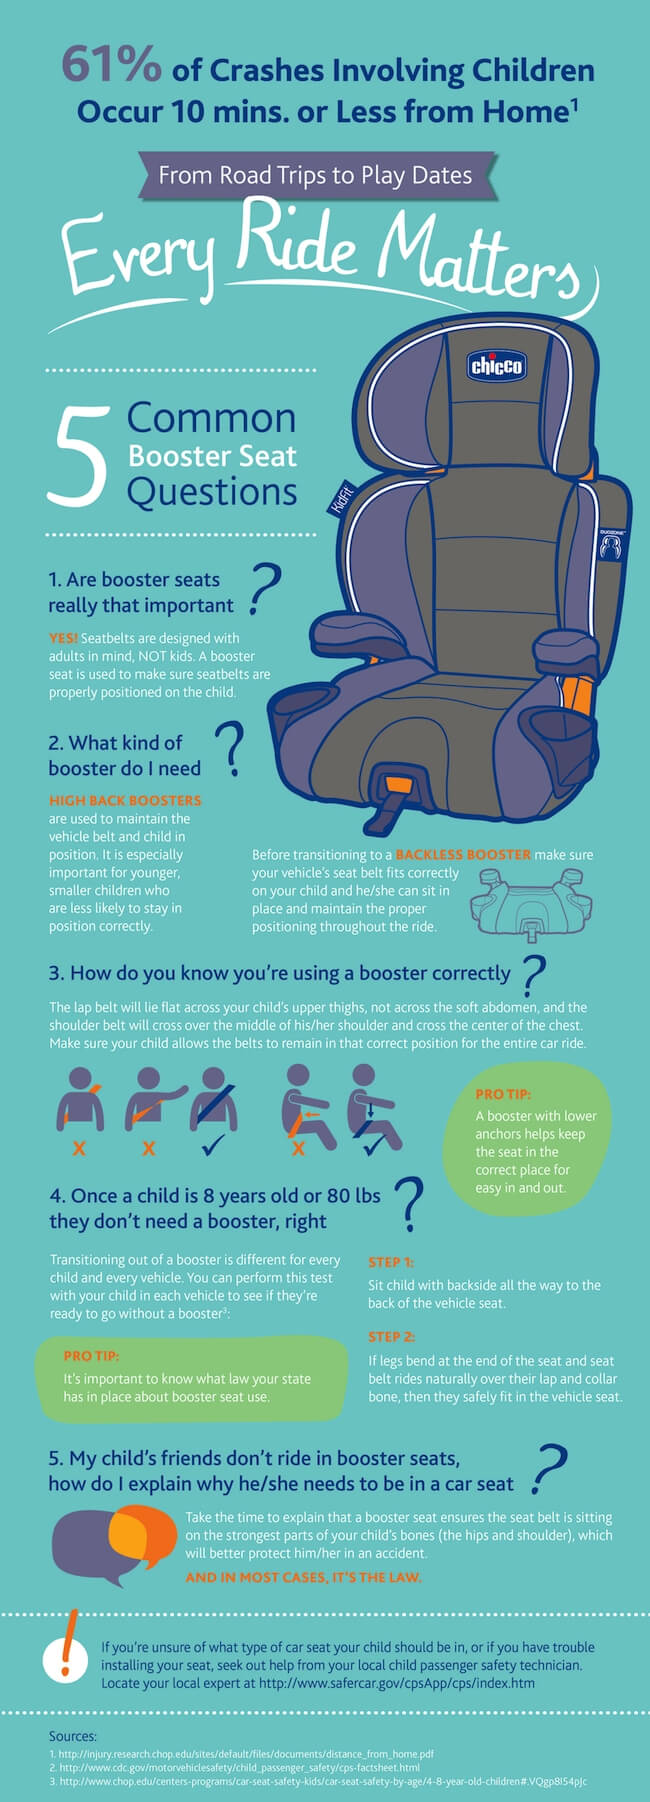 With so much information (and misinformation) out there, it can be confusing as a parent to know what is really safest! My daughter just turned 8, but is still pretty small, so I need to know: how long DOES a child need a booster seat?